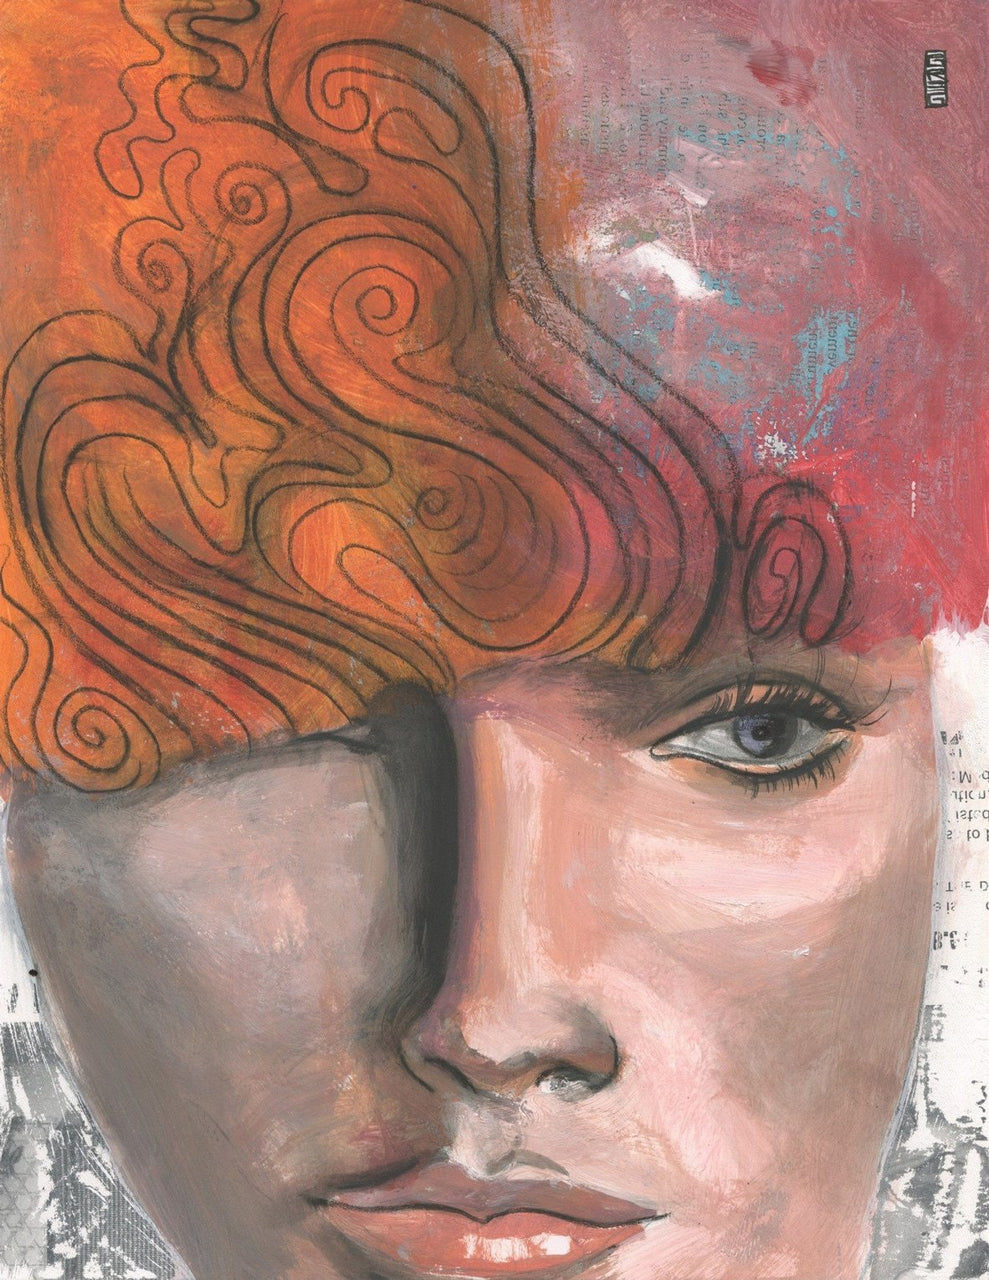 Hallucination Hair - Gregory Hergert